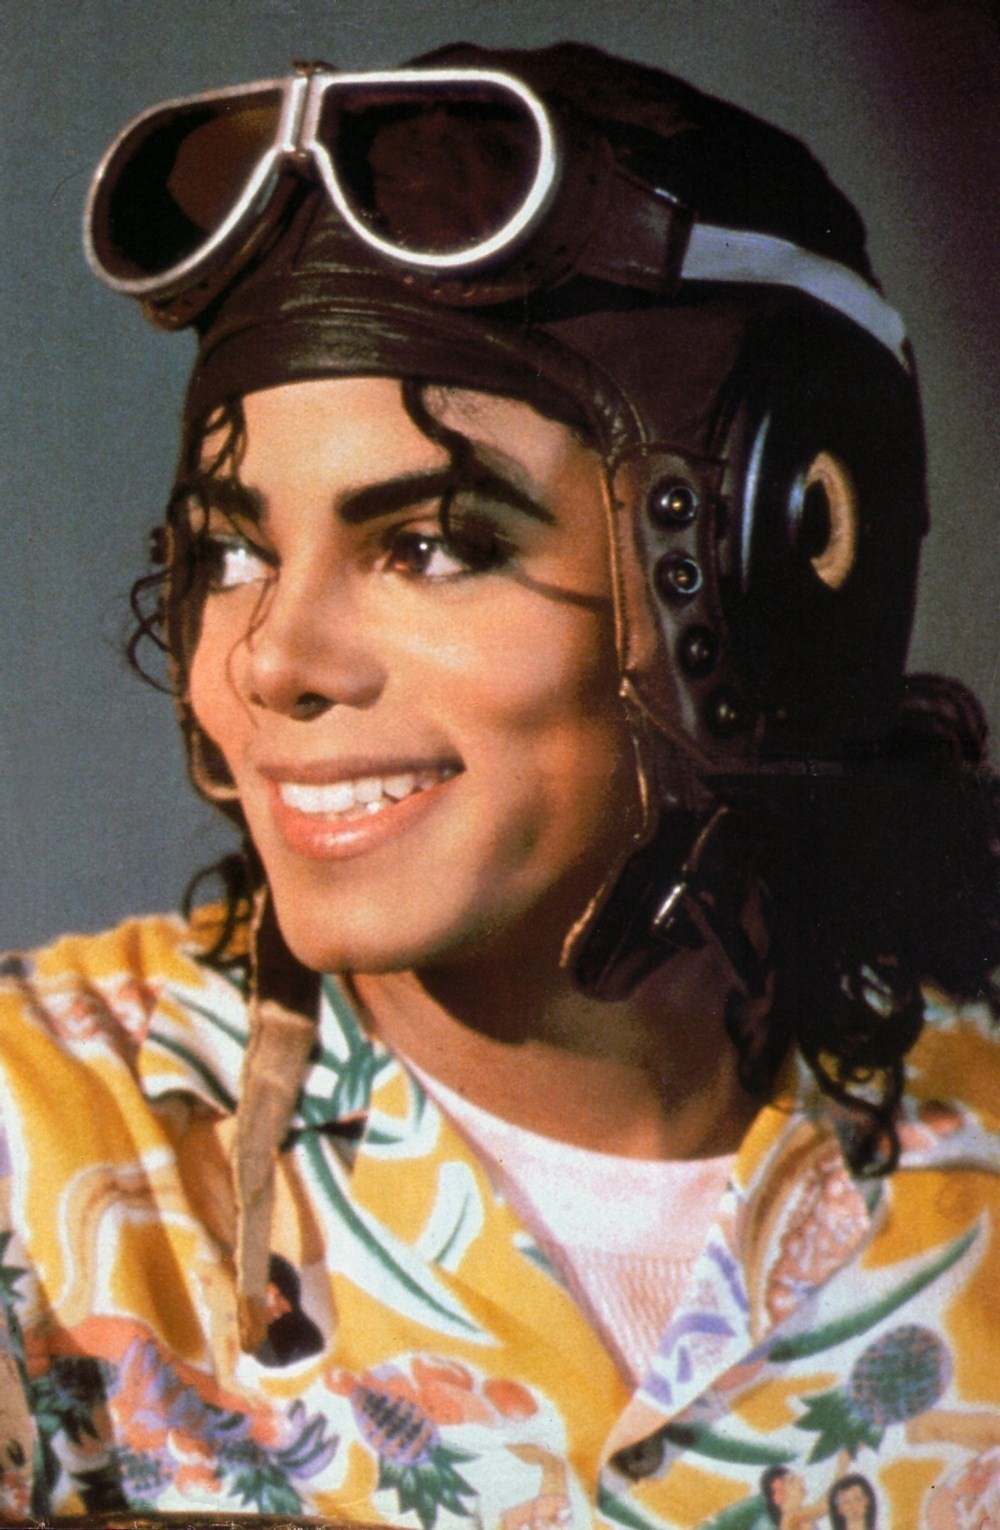 Michael - Leave Me Alone shoot